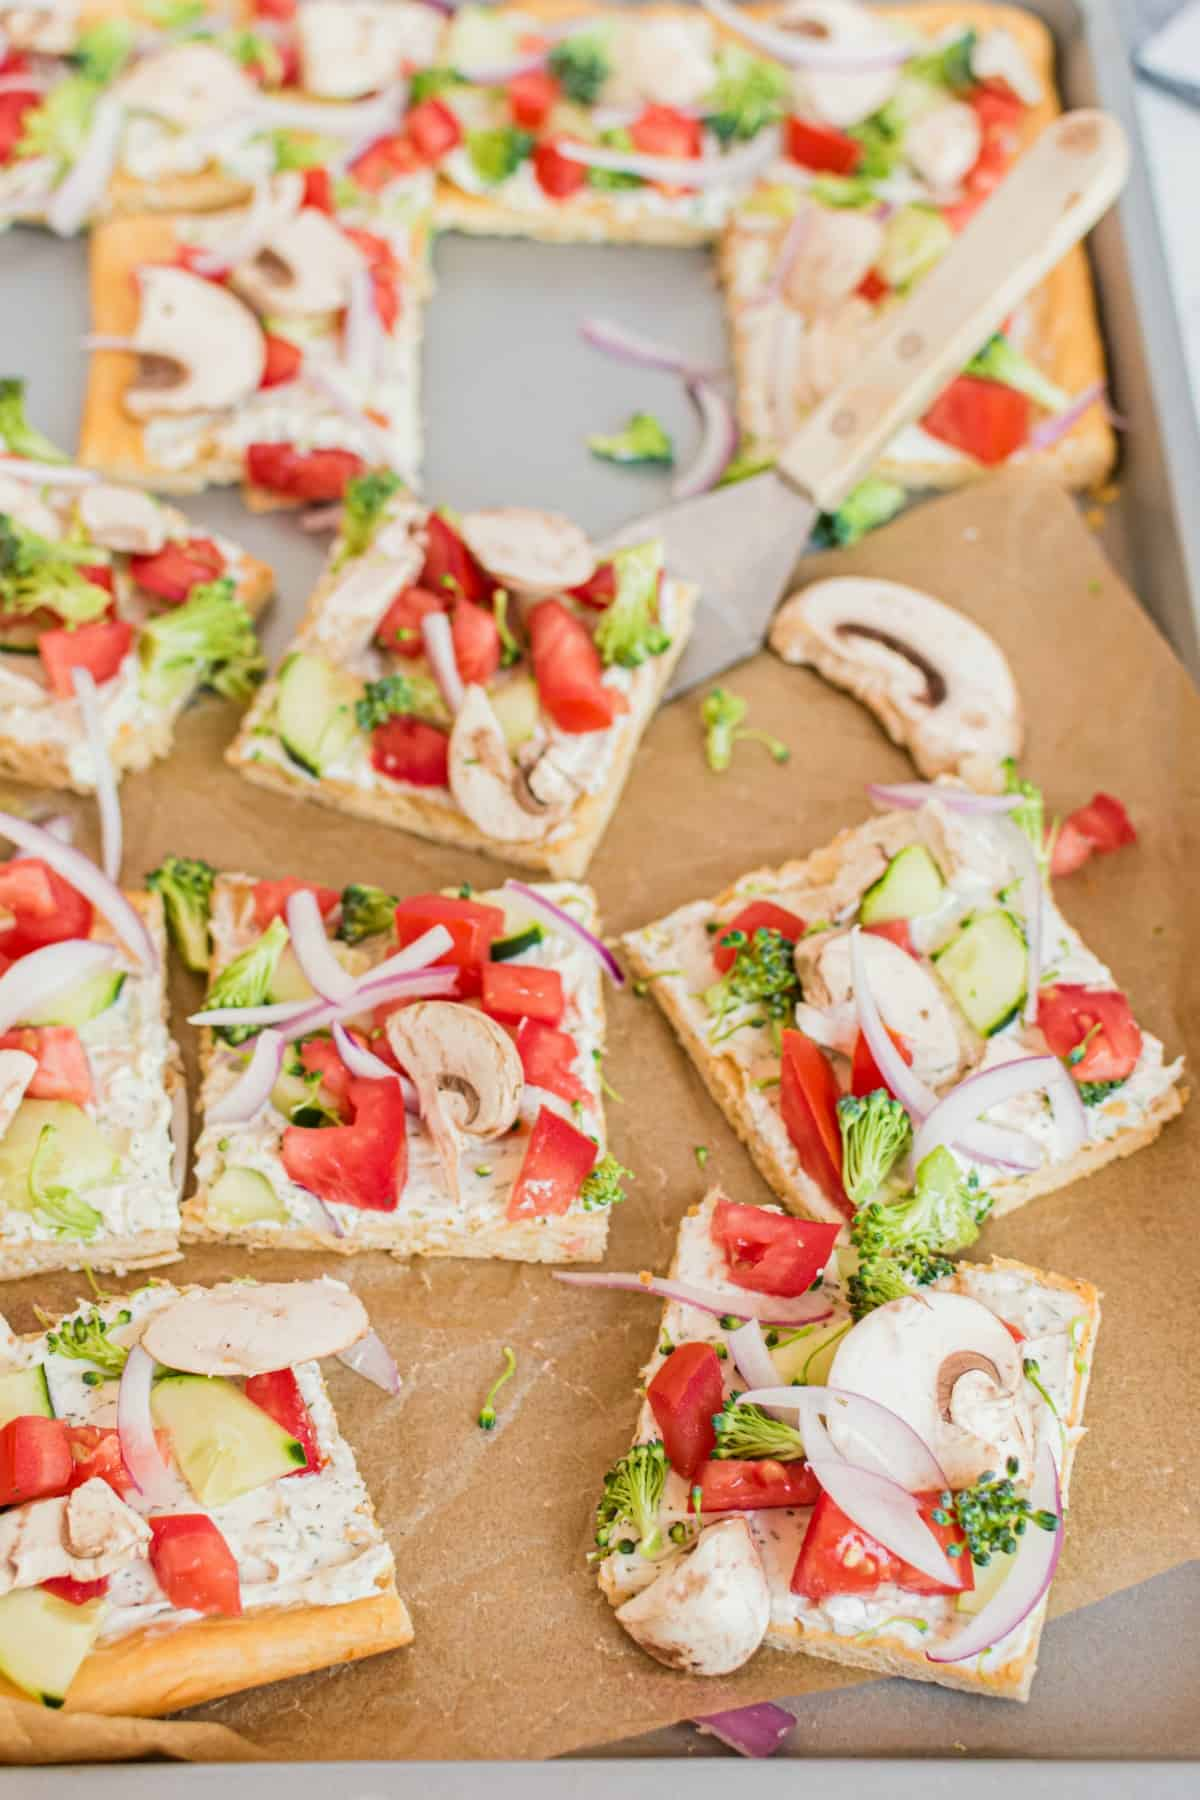 Crescent roll pizza crust topped with dill cream cheese spread and fresh veggies. Cut into squares.